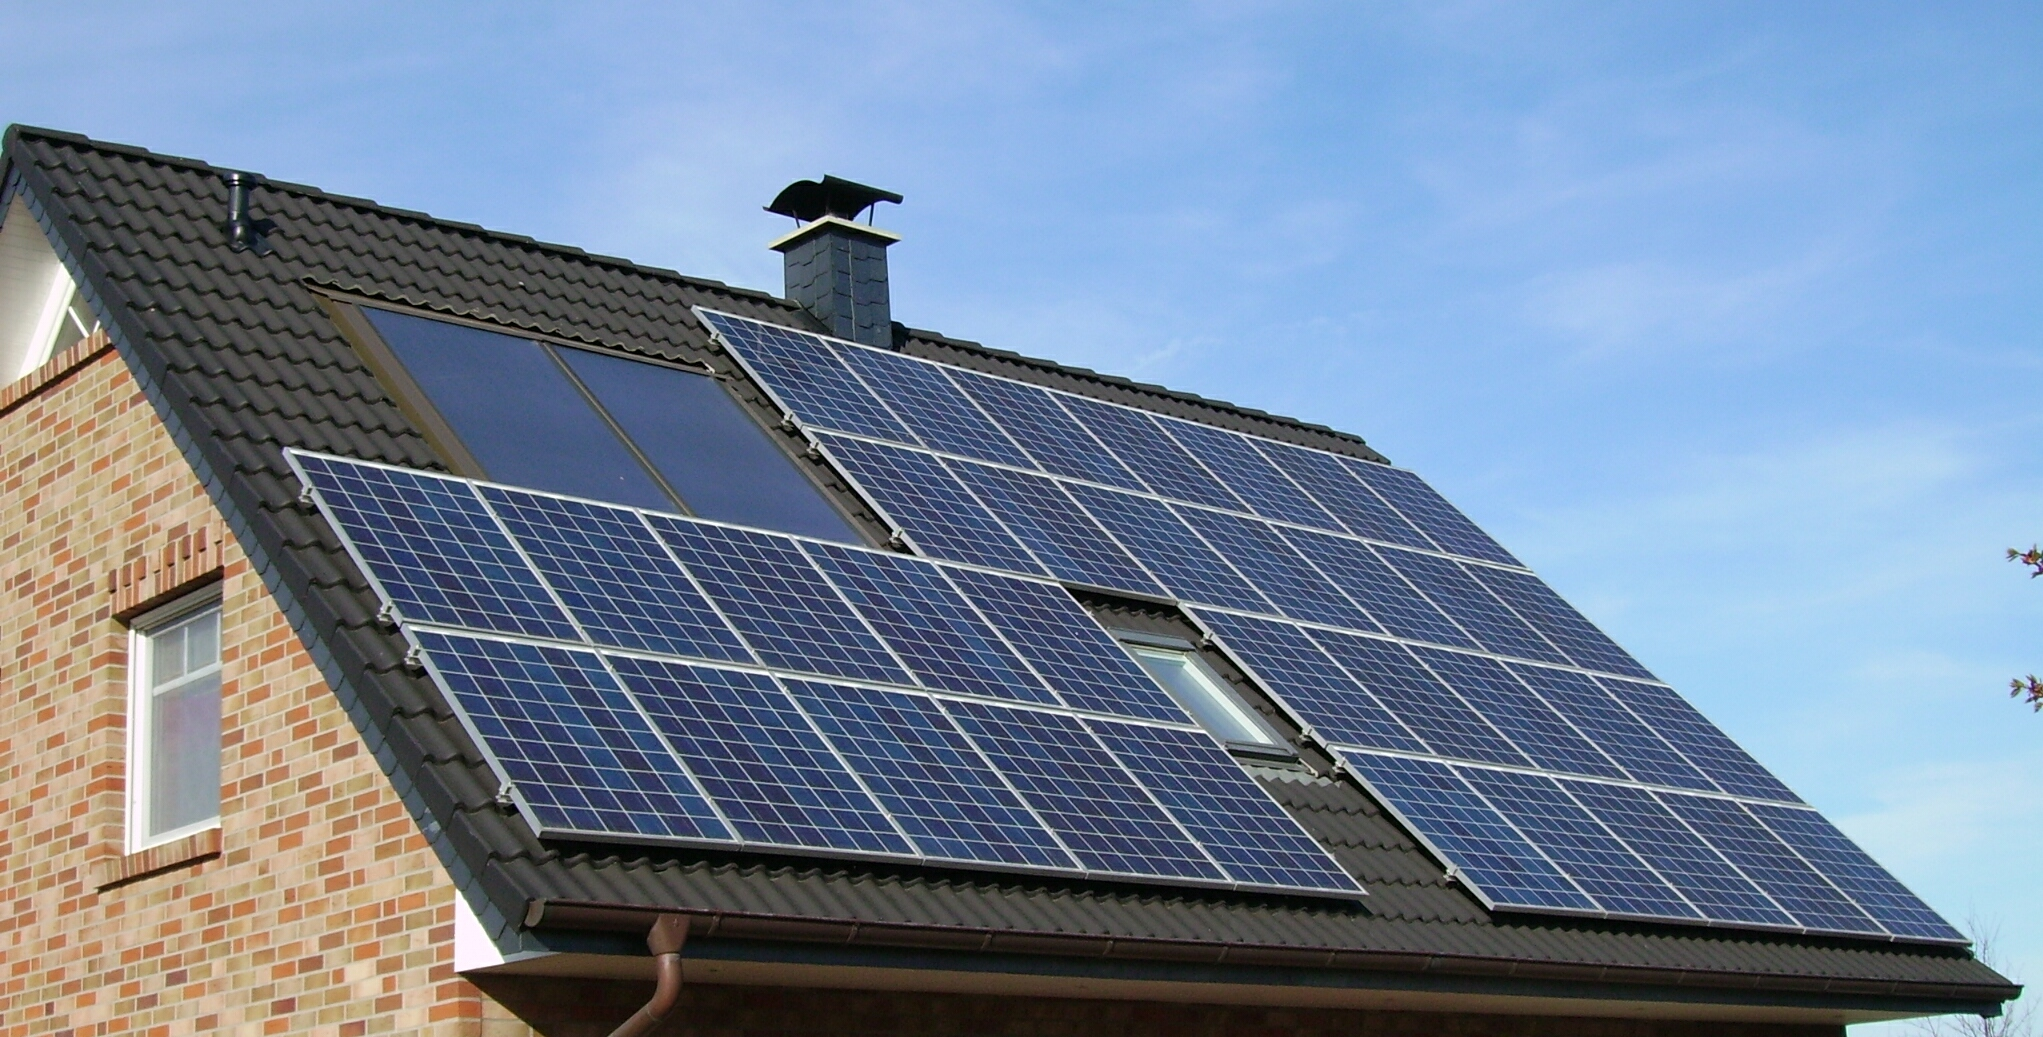 English: Solar panels on a roof